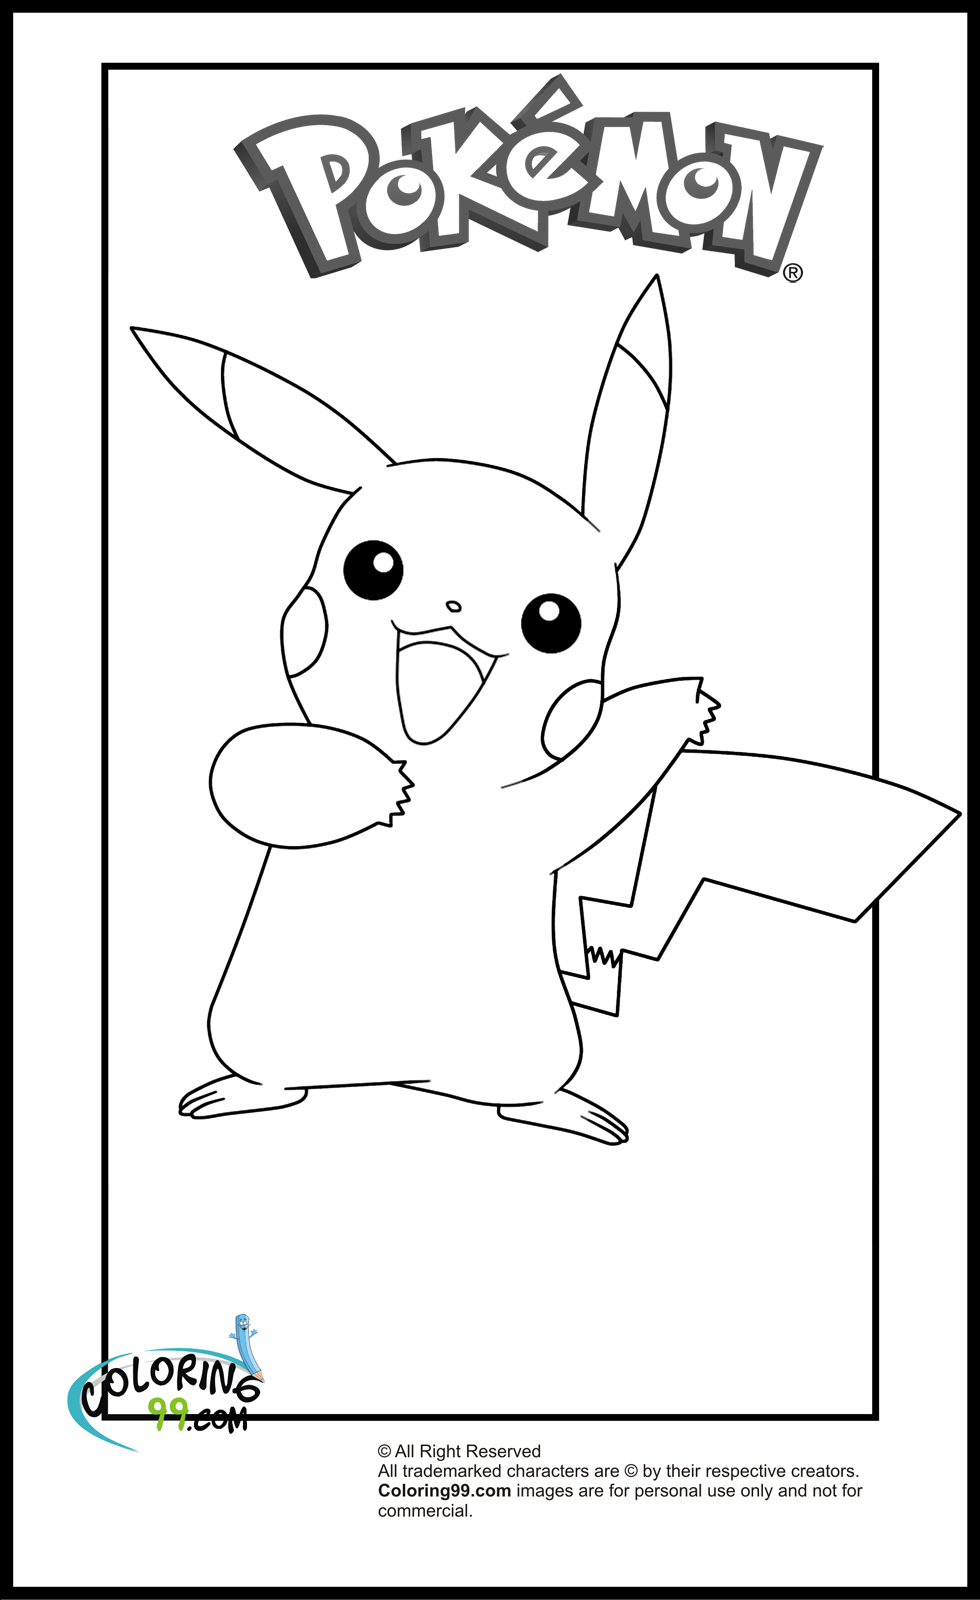 coloring sheets to print out coloring sheets to print out sheets to out print coloring